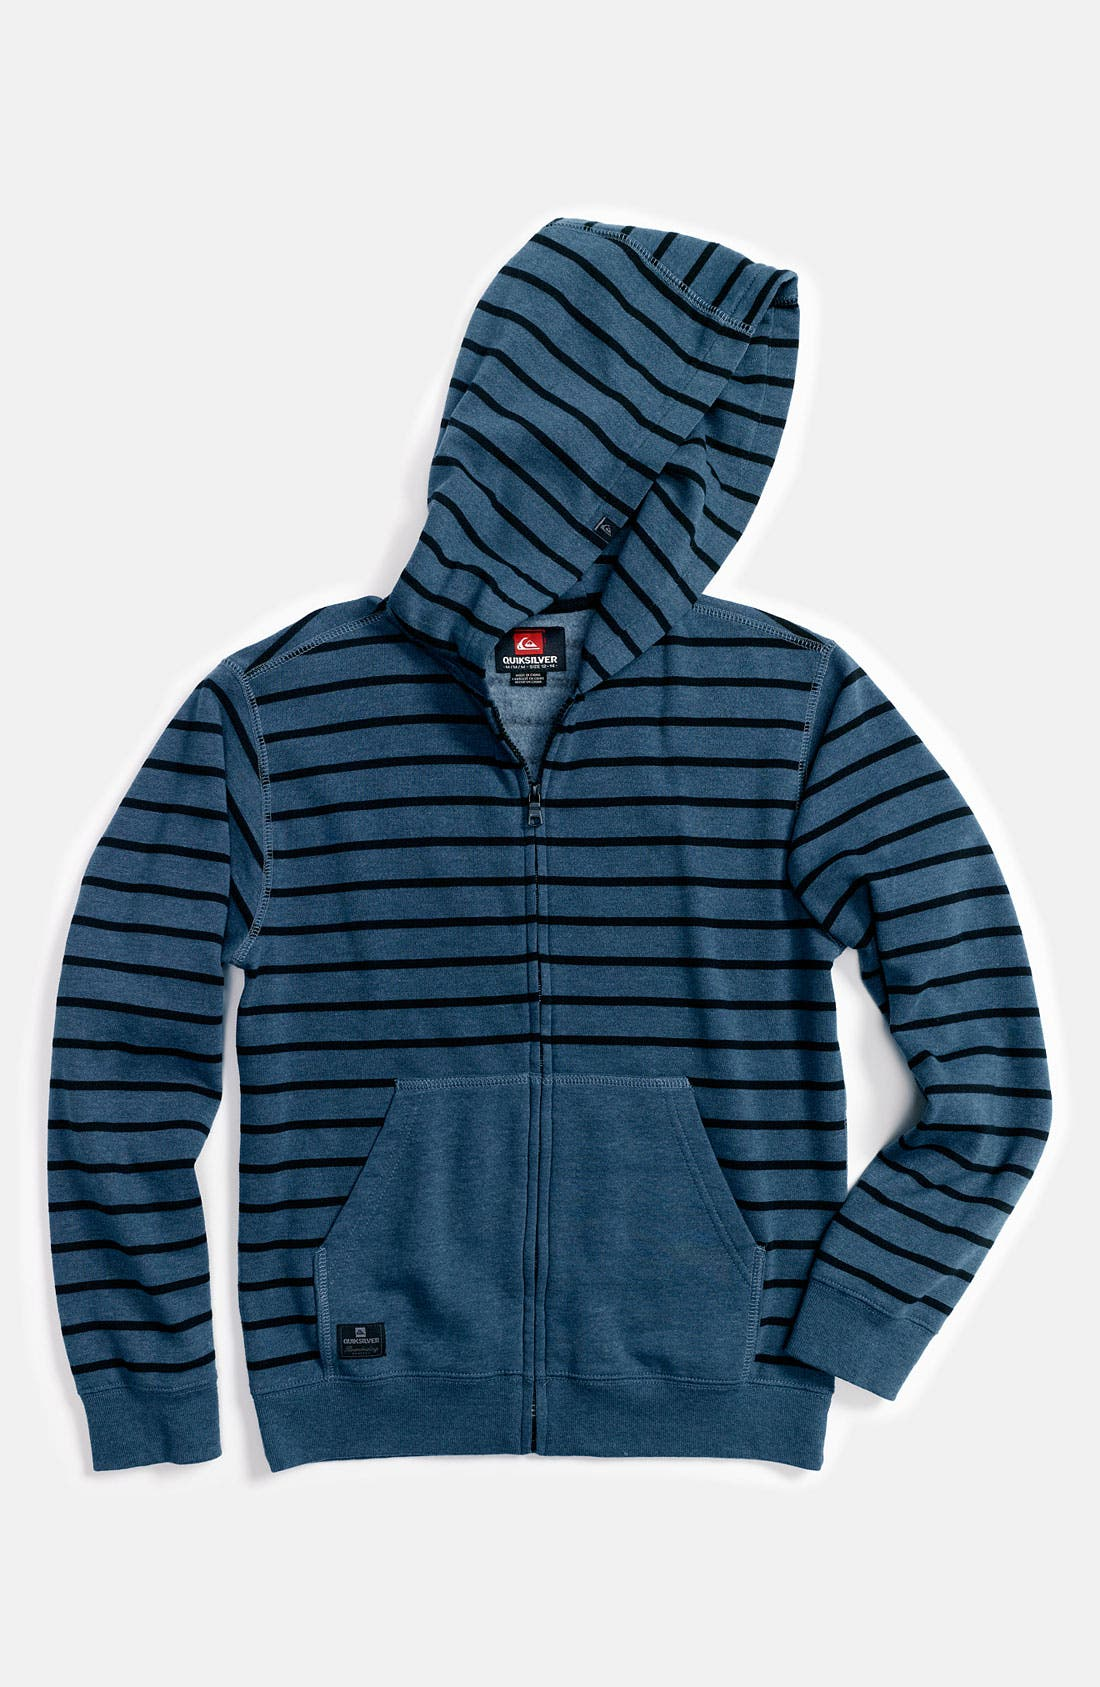 Alternate Image 1 Selected - Quiksilver 'Good Rev' Hoodie (Little Boys)